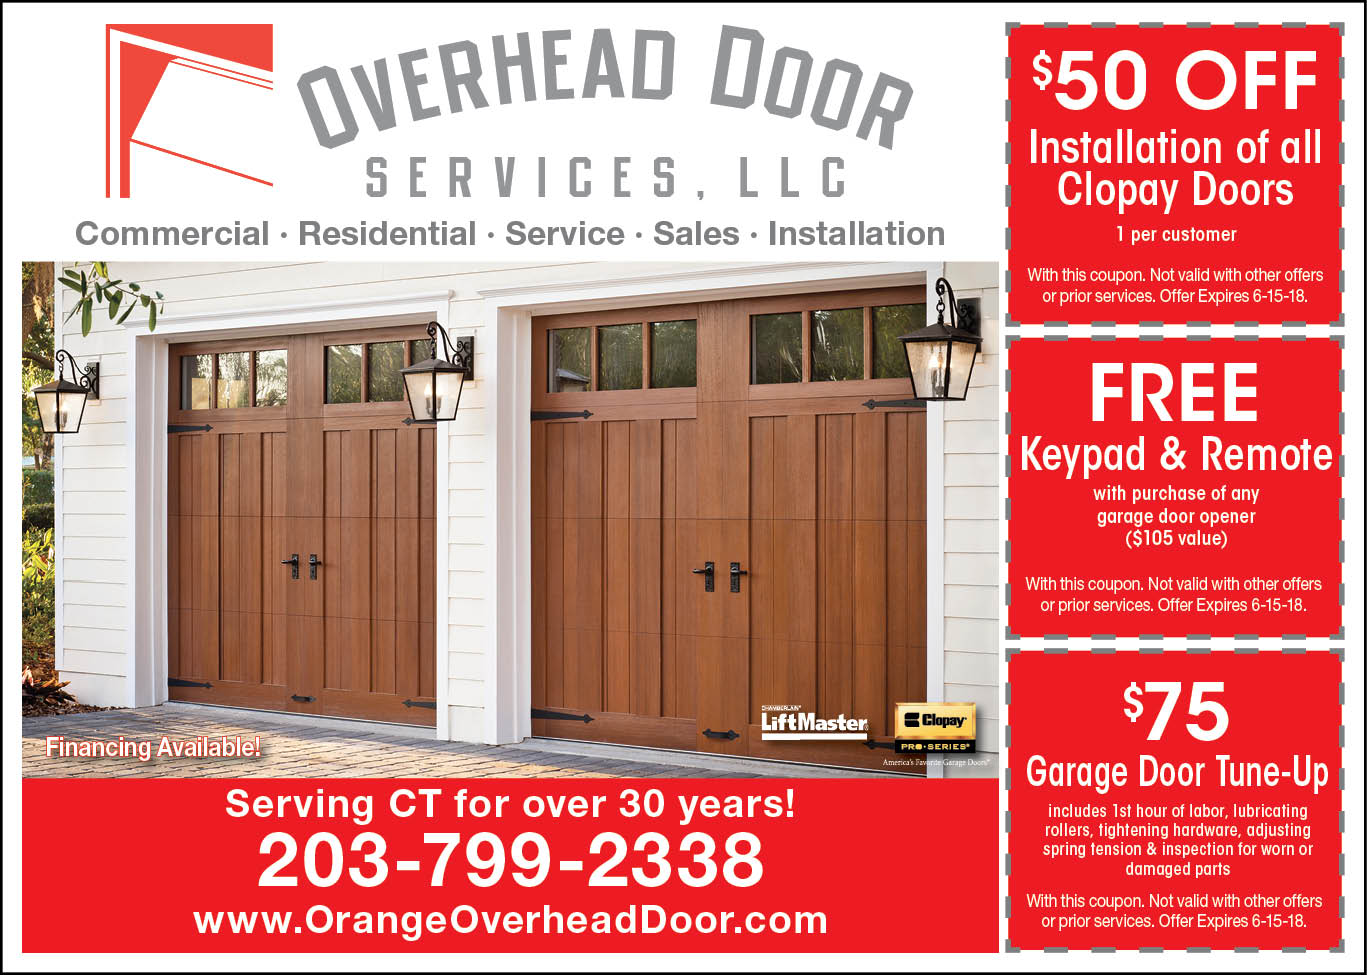 Beau Specials And Promotions Orange Ct Overhead Door Services